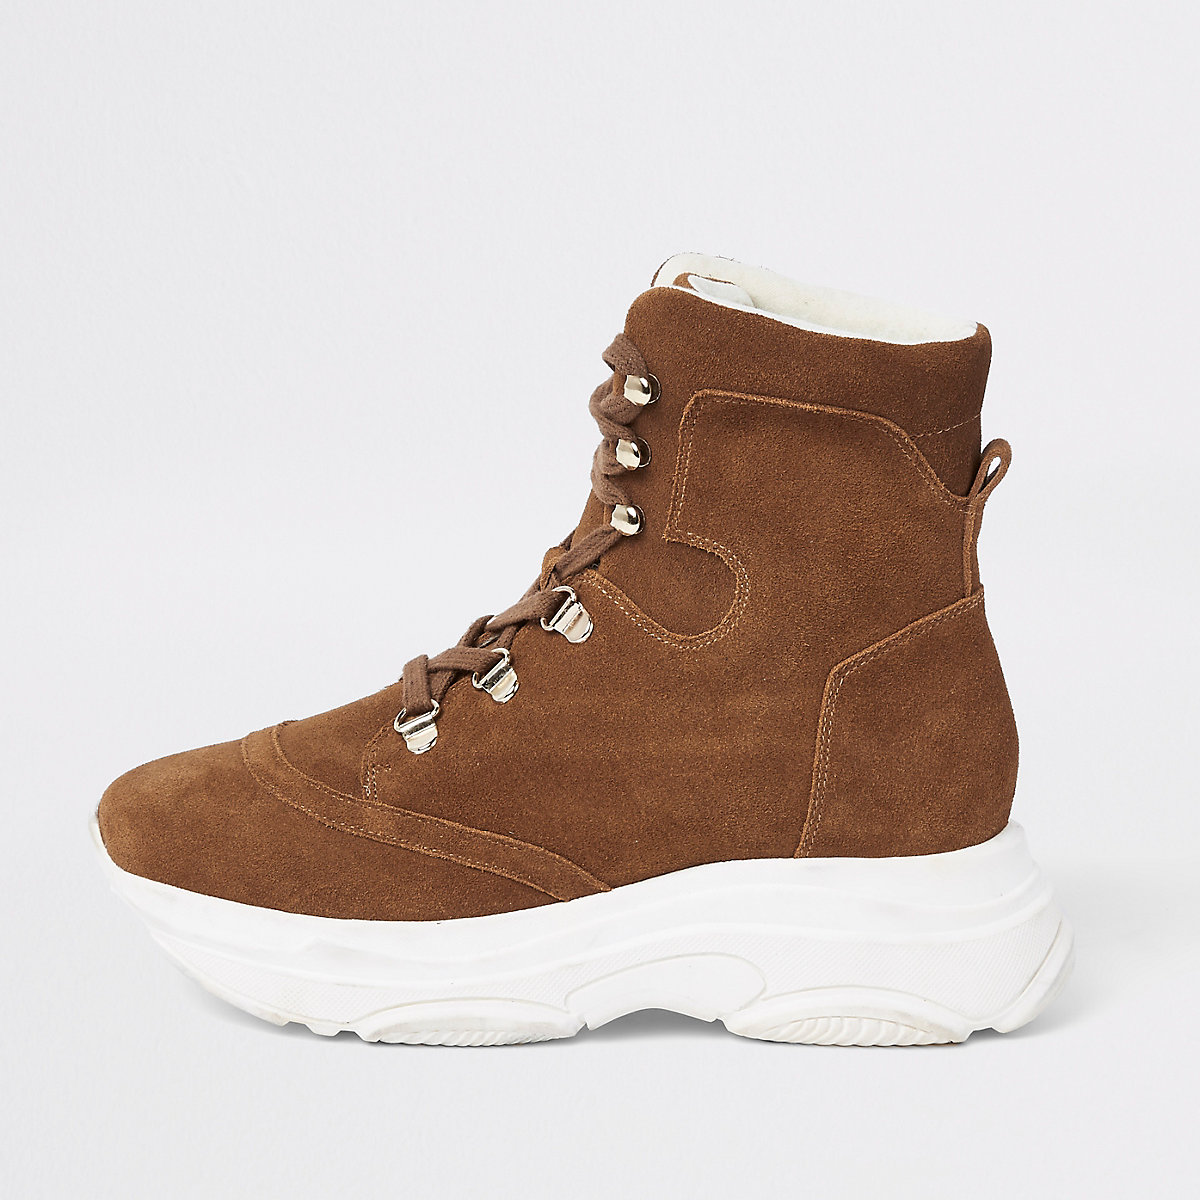 Brown sporty lace-up boots